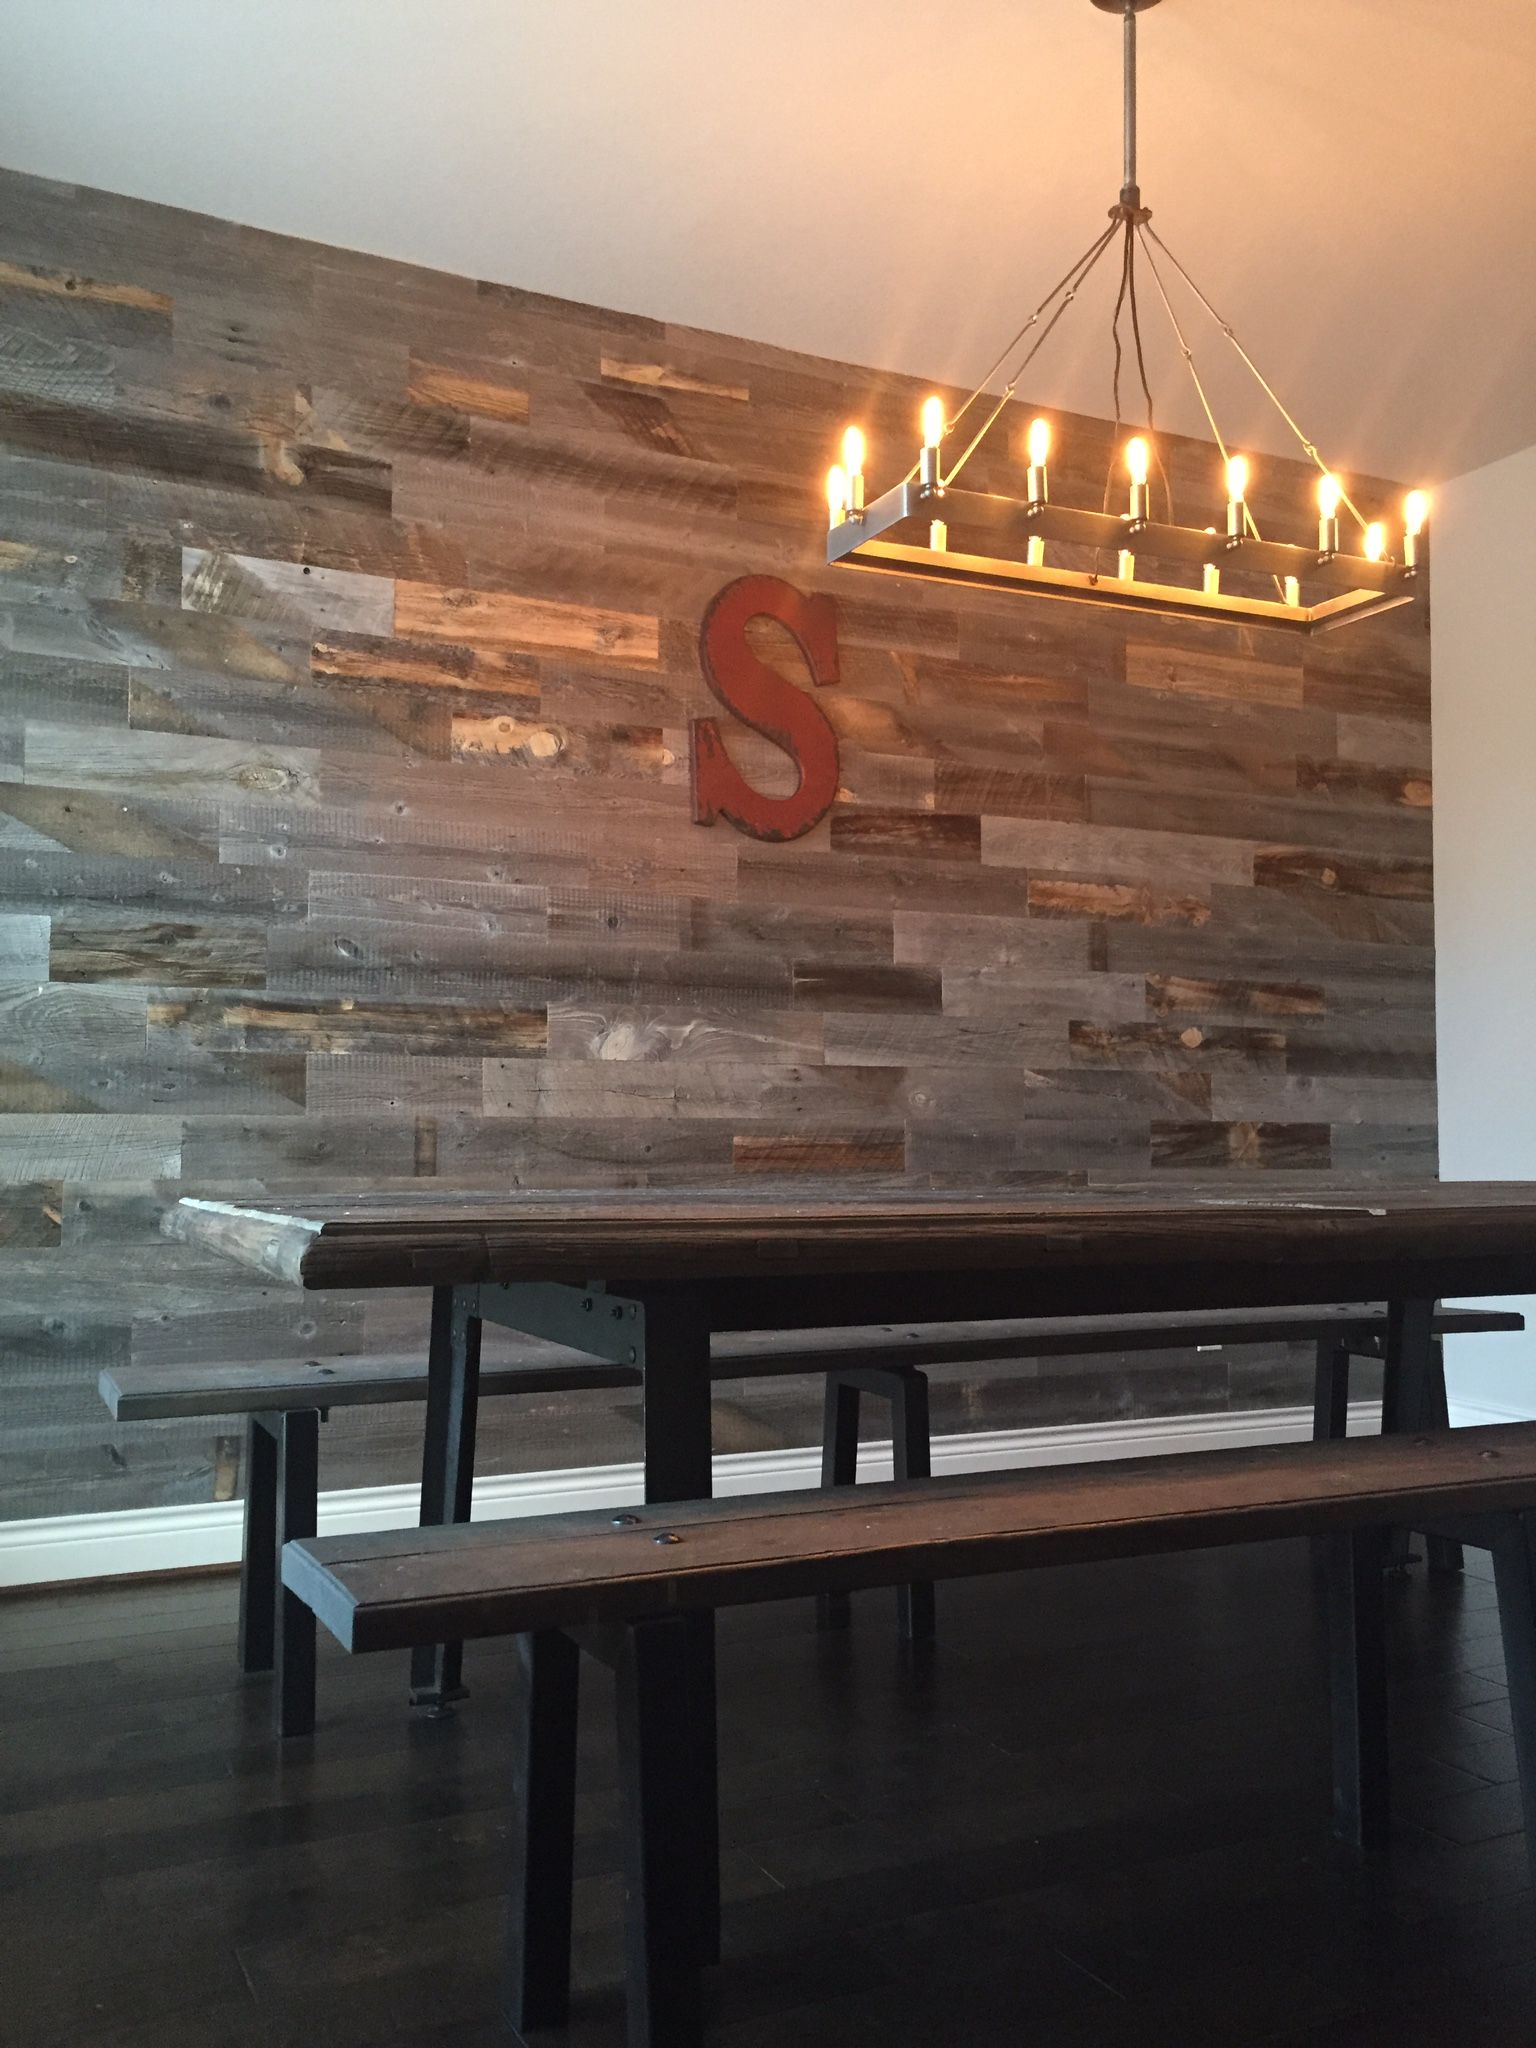 Rooms With Wood Panel Walls: Reclaimed Weathered Wood (With Images)